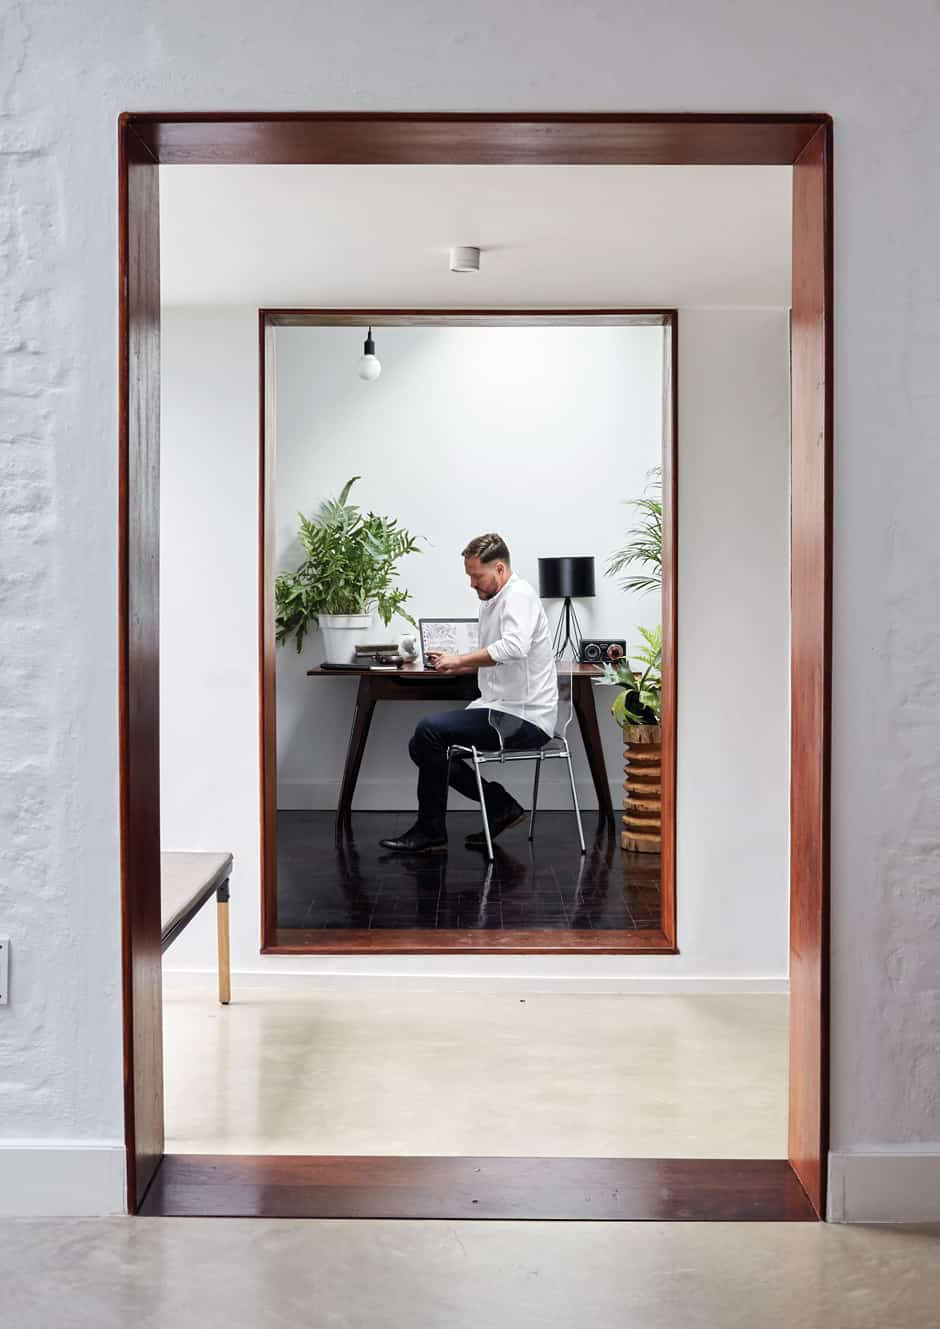 OFFICE Christo is pictured in the entry vestibule connecting the main house to the study, which creates a frame for the vintage desk, the lightness of the composition maintained by a transparent polycarbonate chair. Indoor plants bring an organic element to the clean-lined simplicity of the white, cube-like space, lit from above by skylights. The floor in this area is parquet salvaged from the rest of the house.